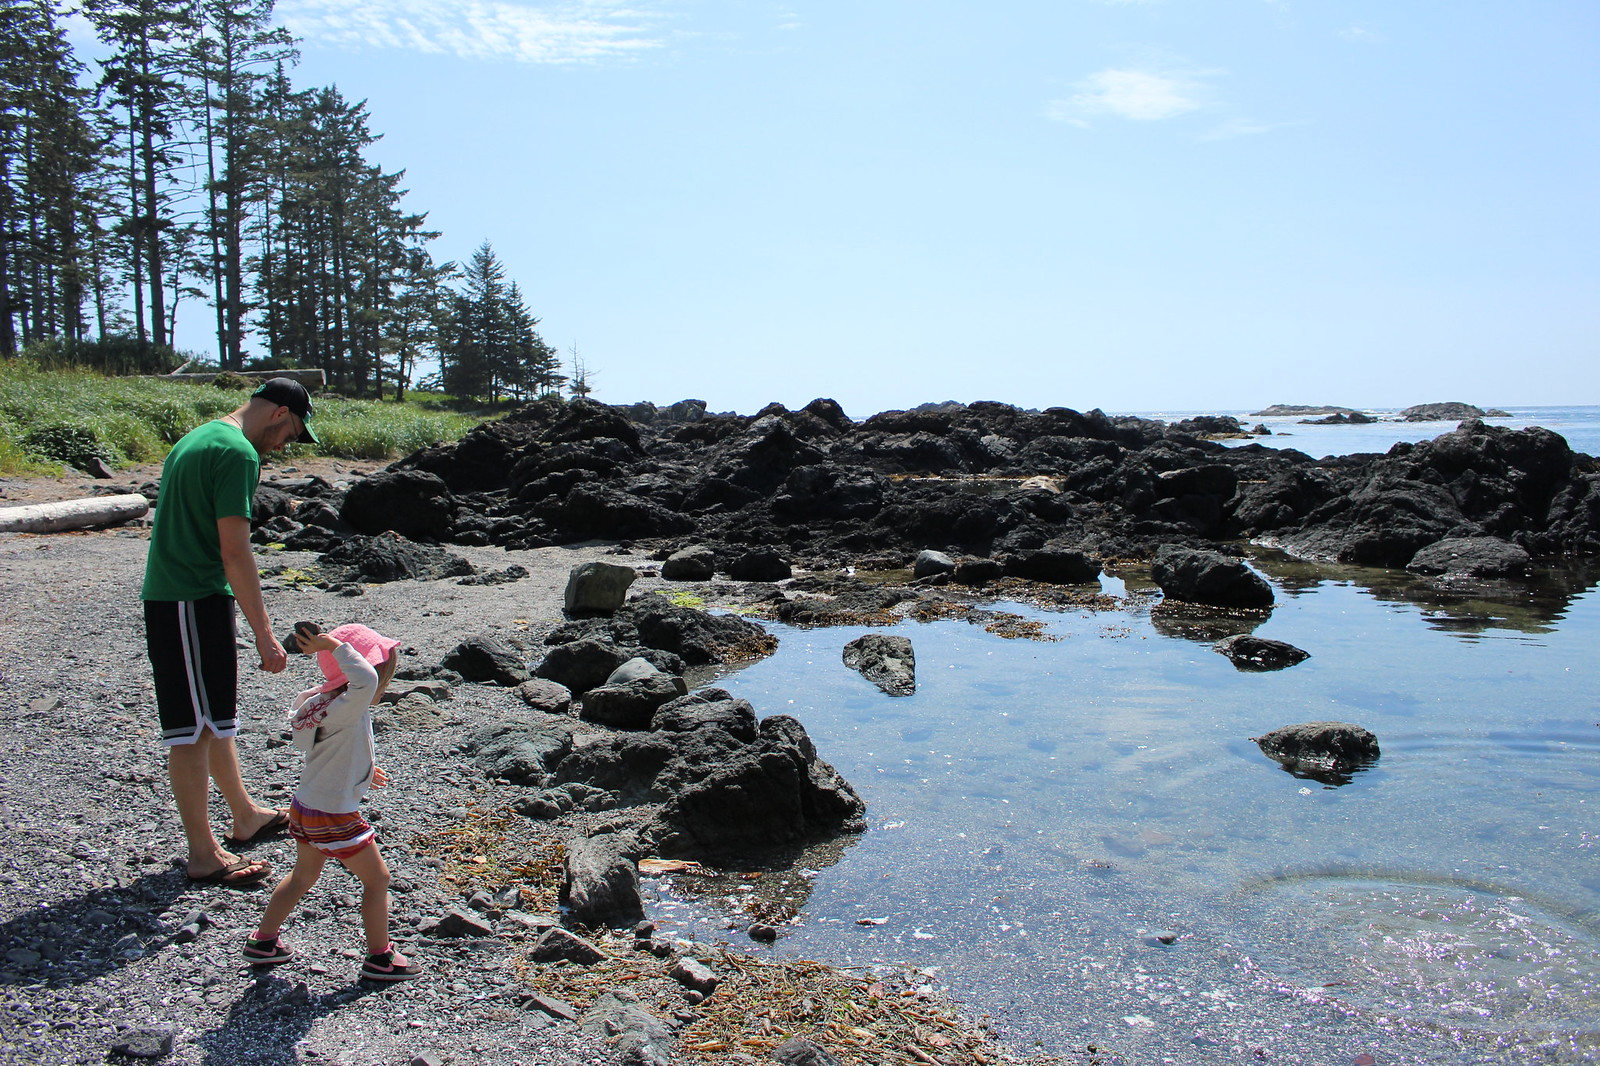 Ucluelet - August 2015